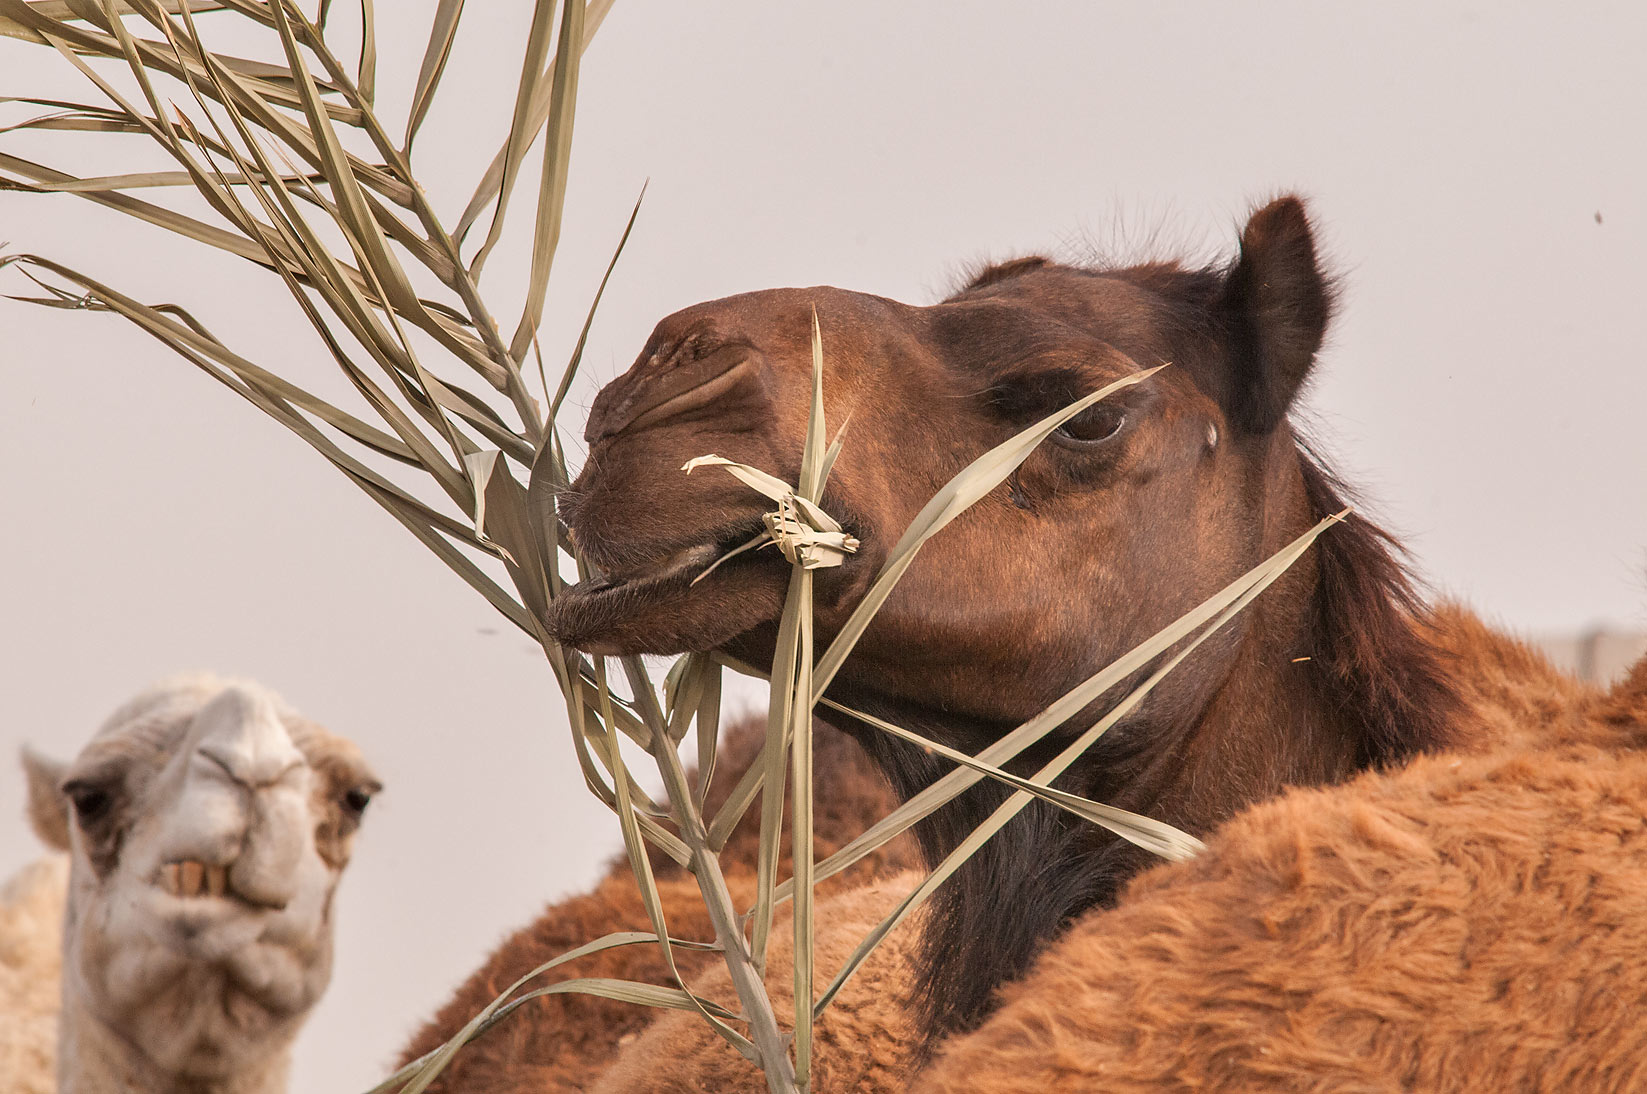 Camels eating palm leaves in Livestock Market, Wholesale Markets area. Doha, Qatar